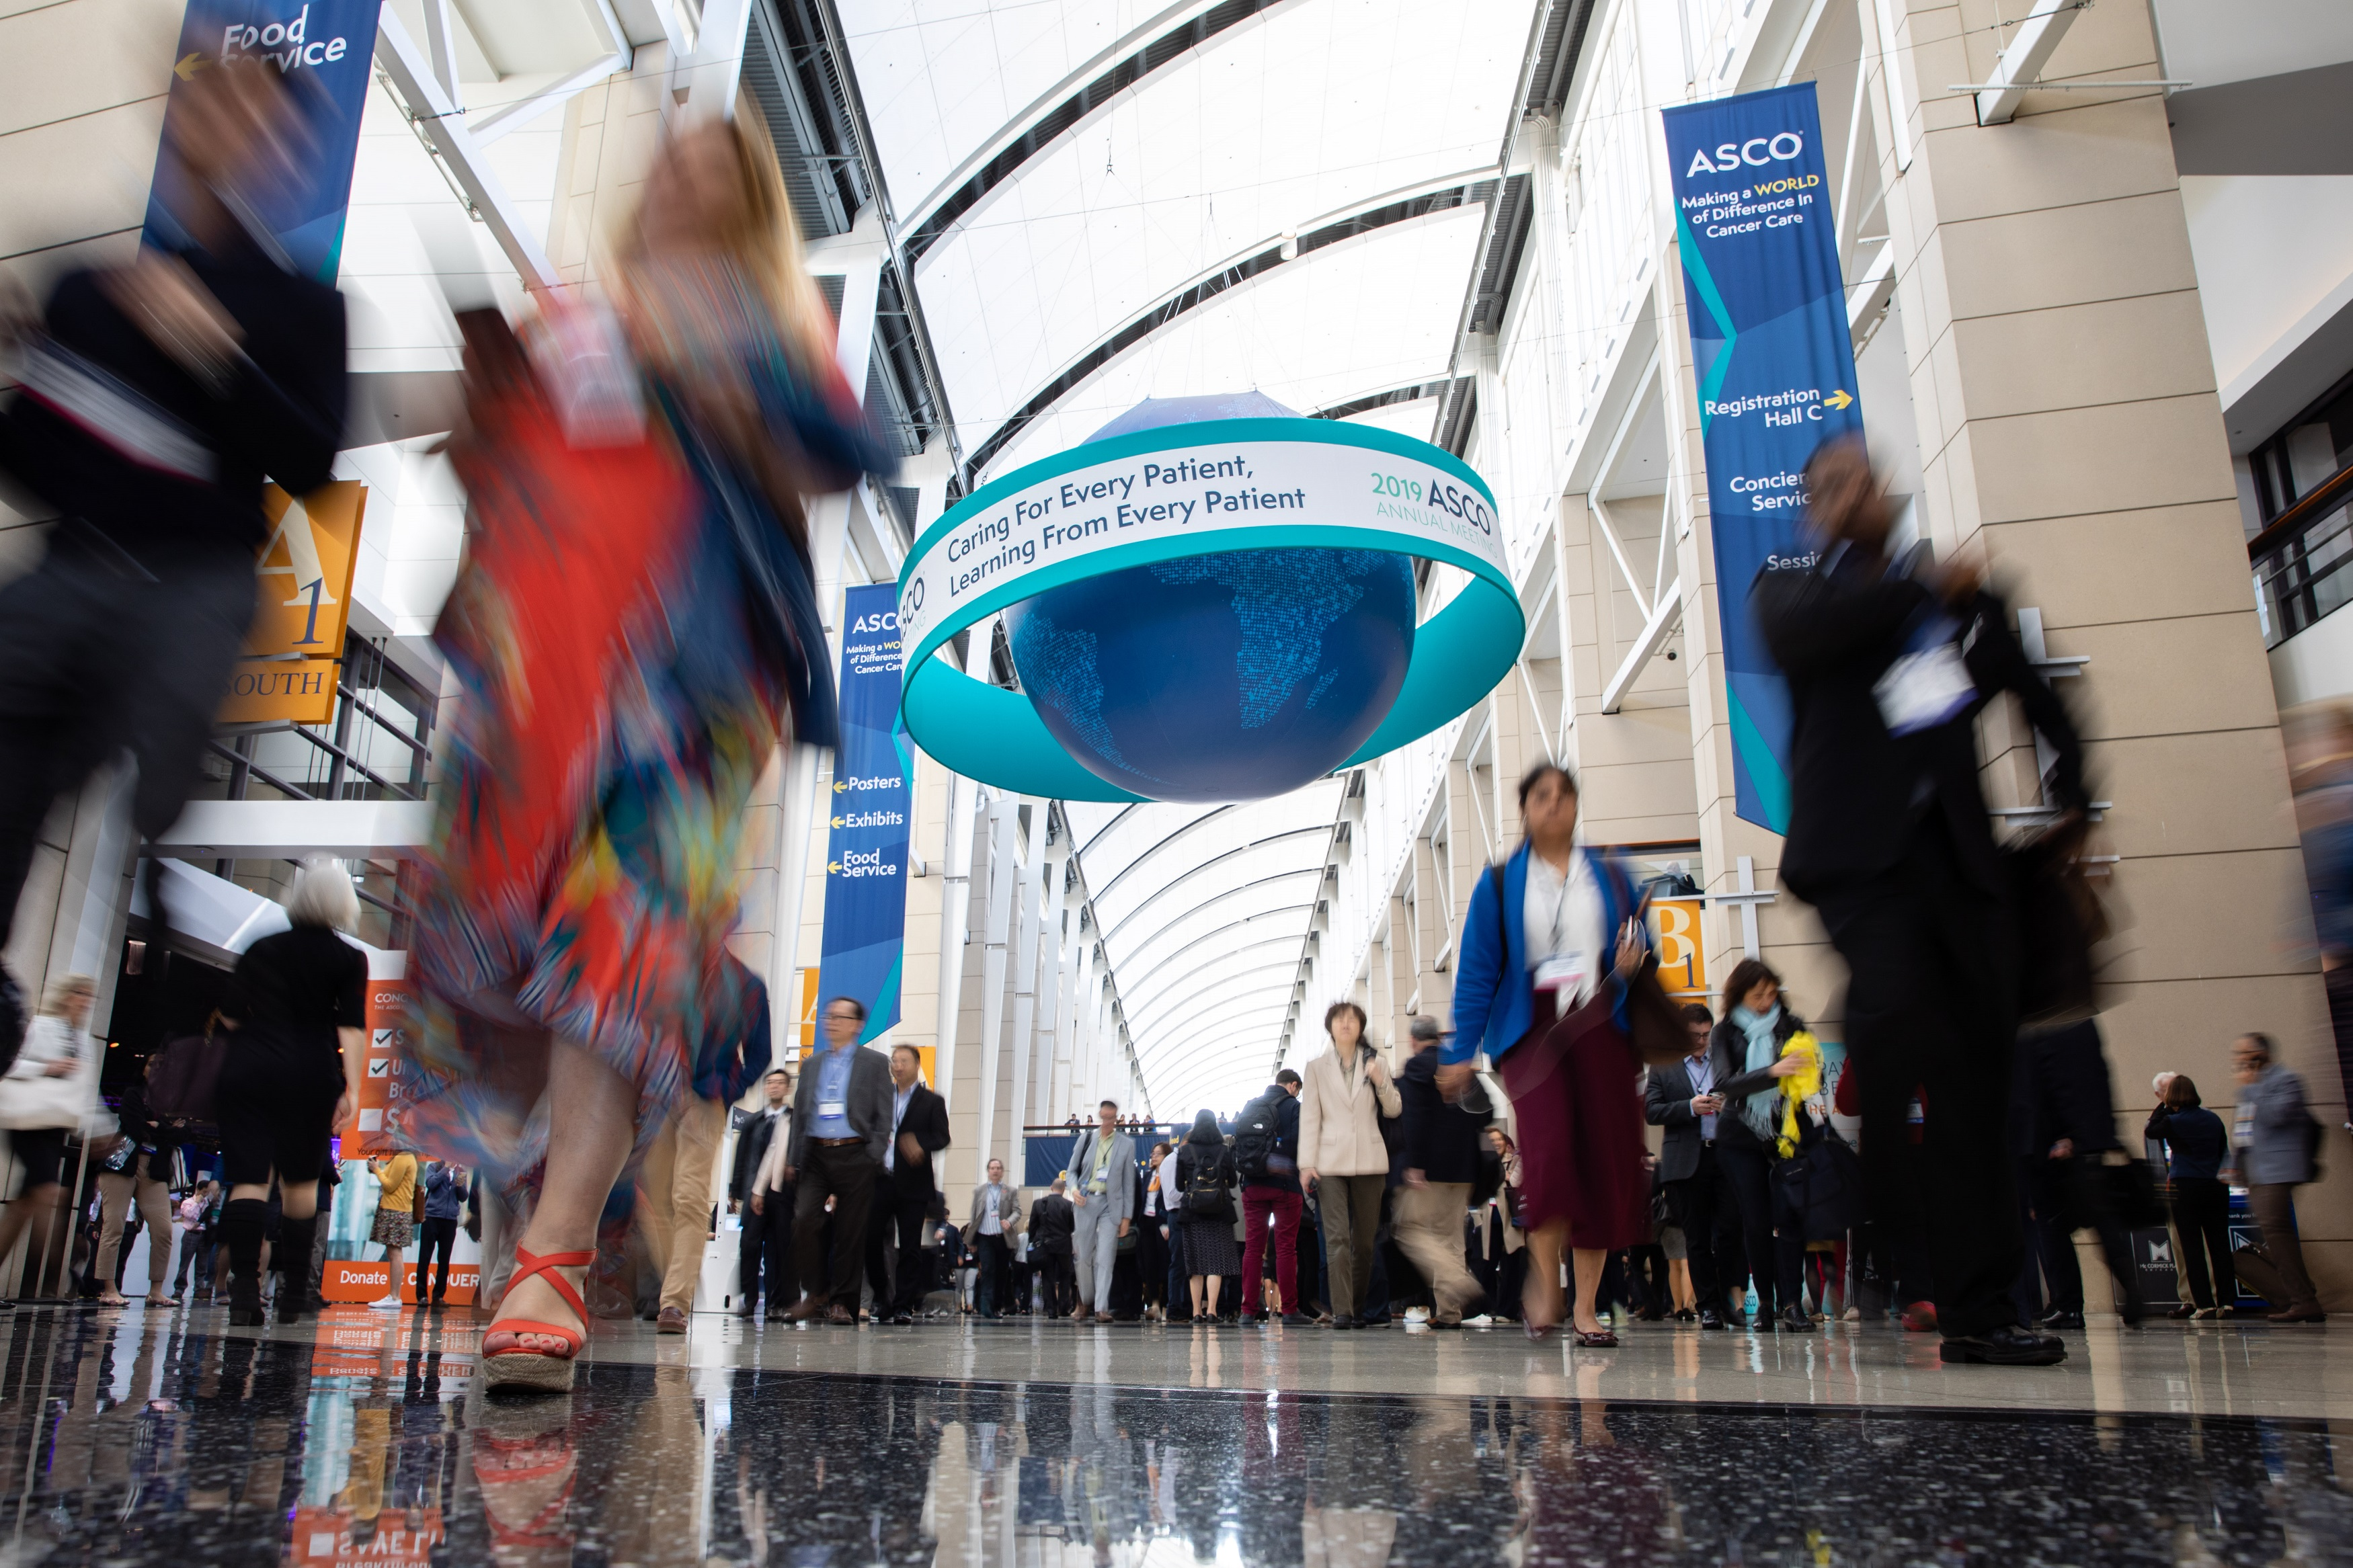 Asco 2019 event analyser – low-key meeting belies some huge